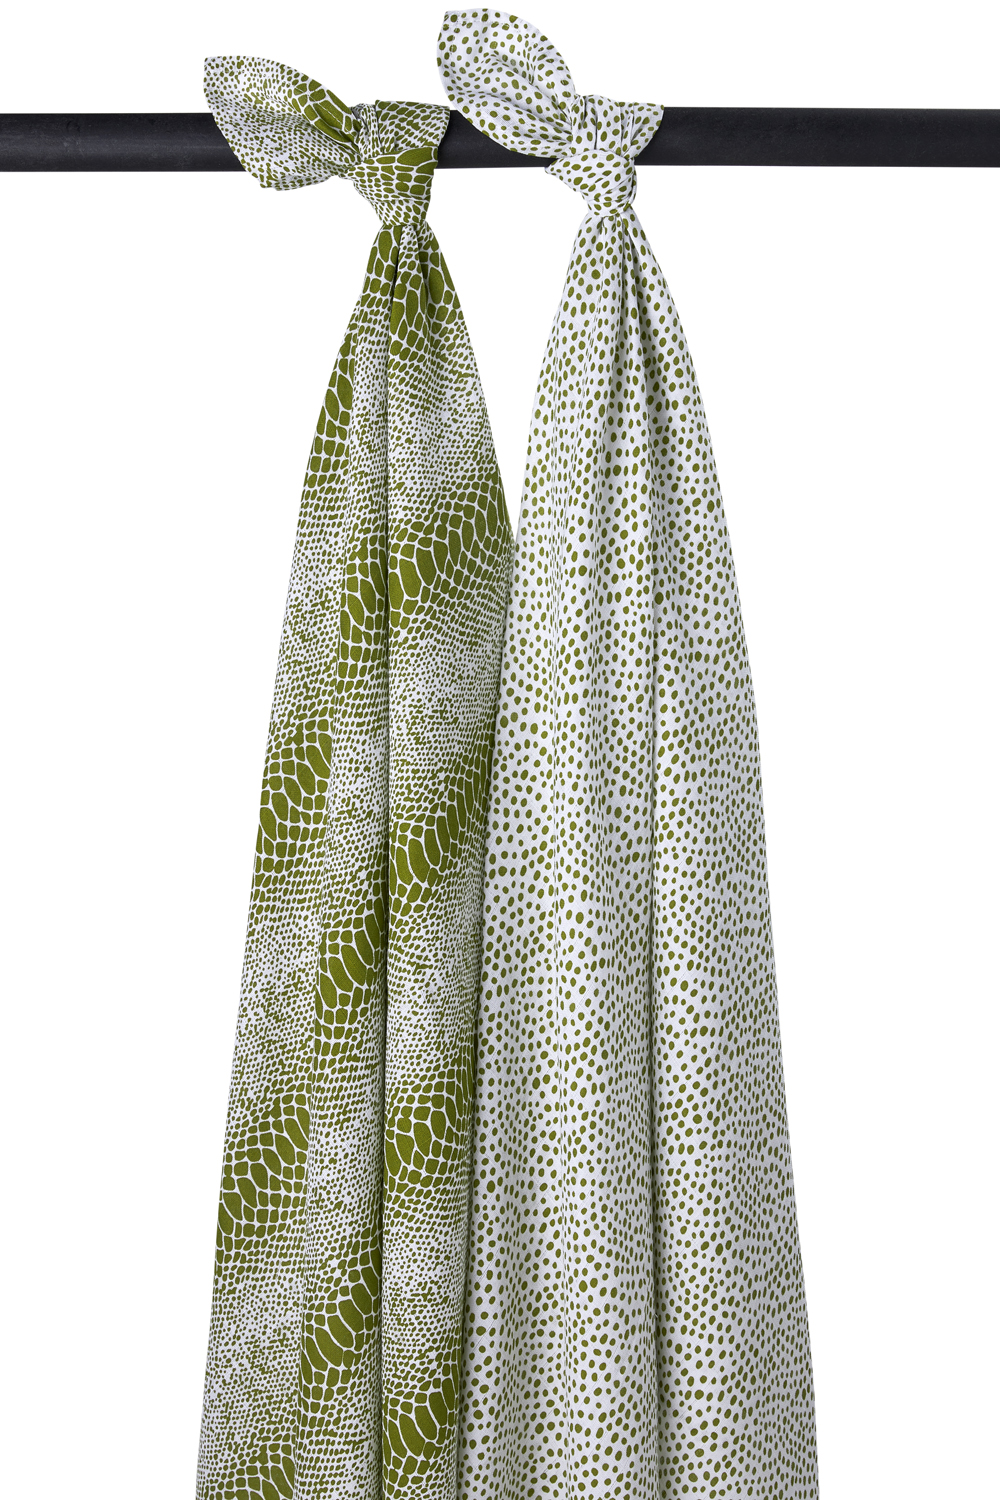 Hydrofiele Swaddles 2-Pack Snake/Cheetah - Avocado - 120x120cm